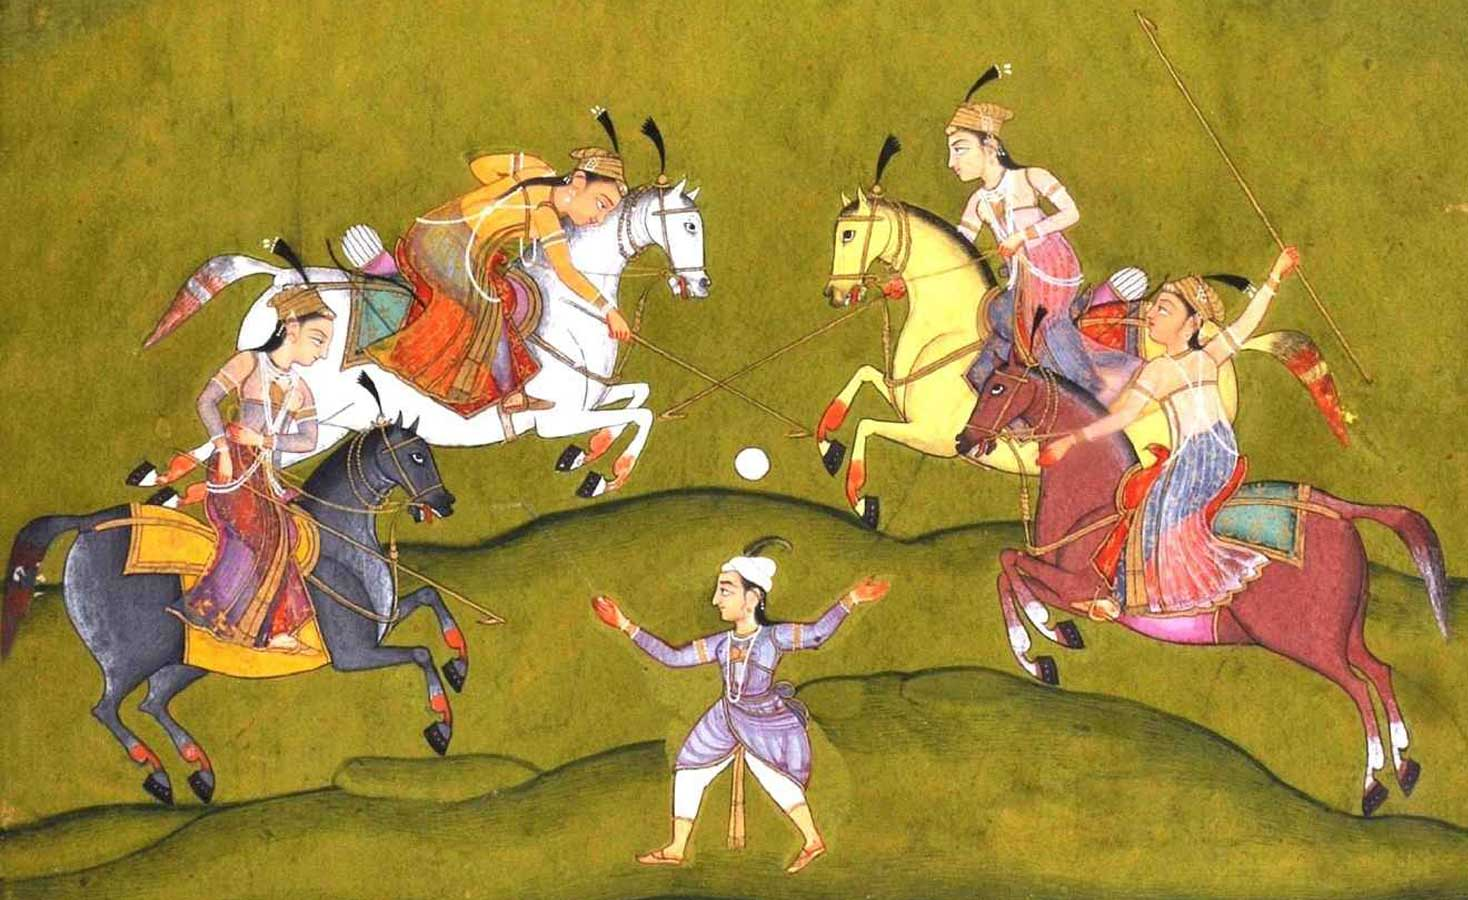 history of manipur polo